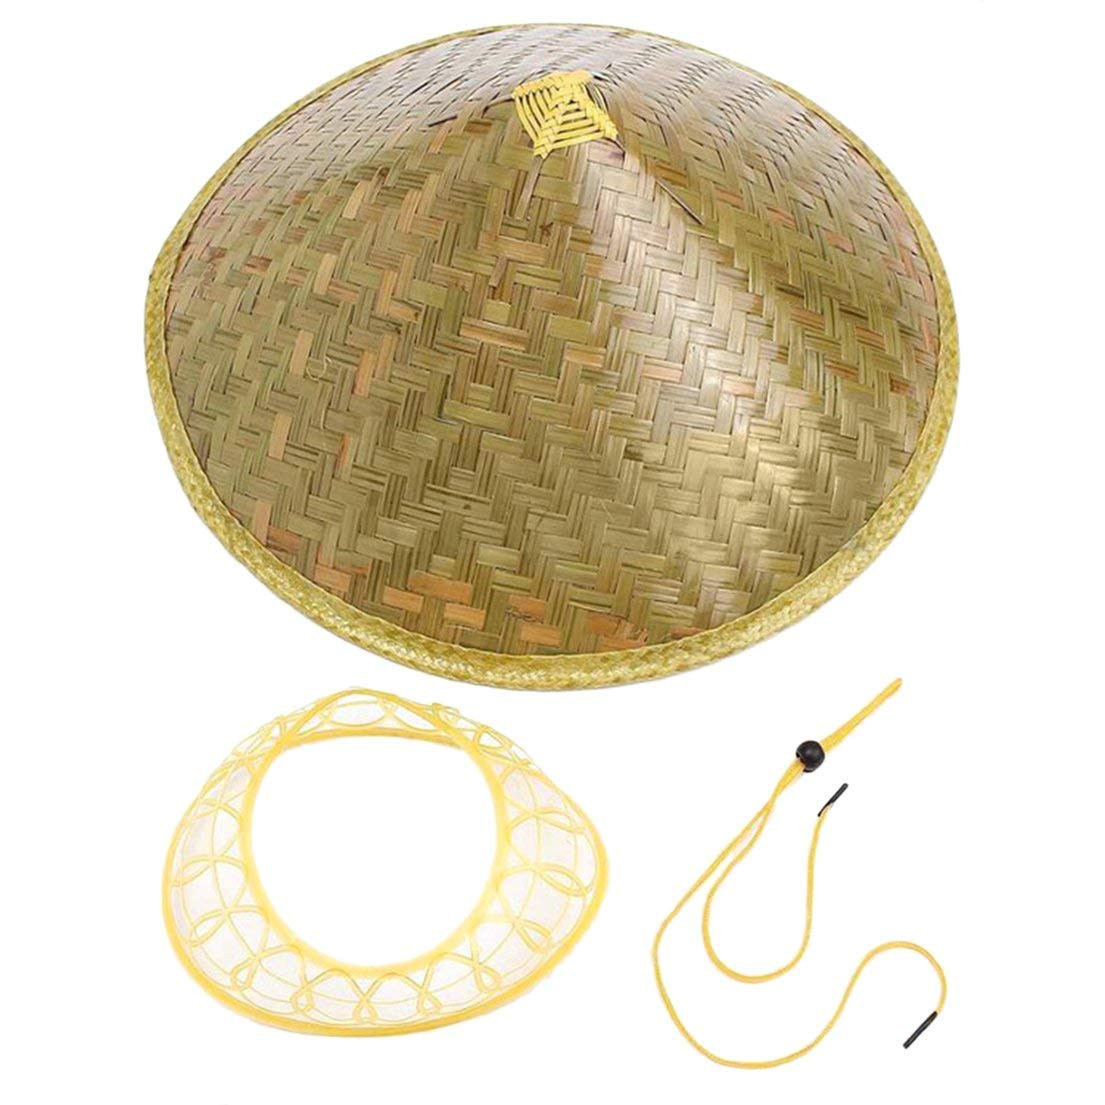 00019213e539d8 Get Quotations · Dynamovolition Chinese Oriental Coolie Sun Hat Brimmed Bamboo  Straw Hat Tourism Rain Cap Cone Conical Farmer